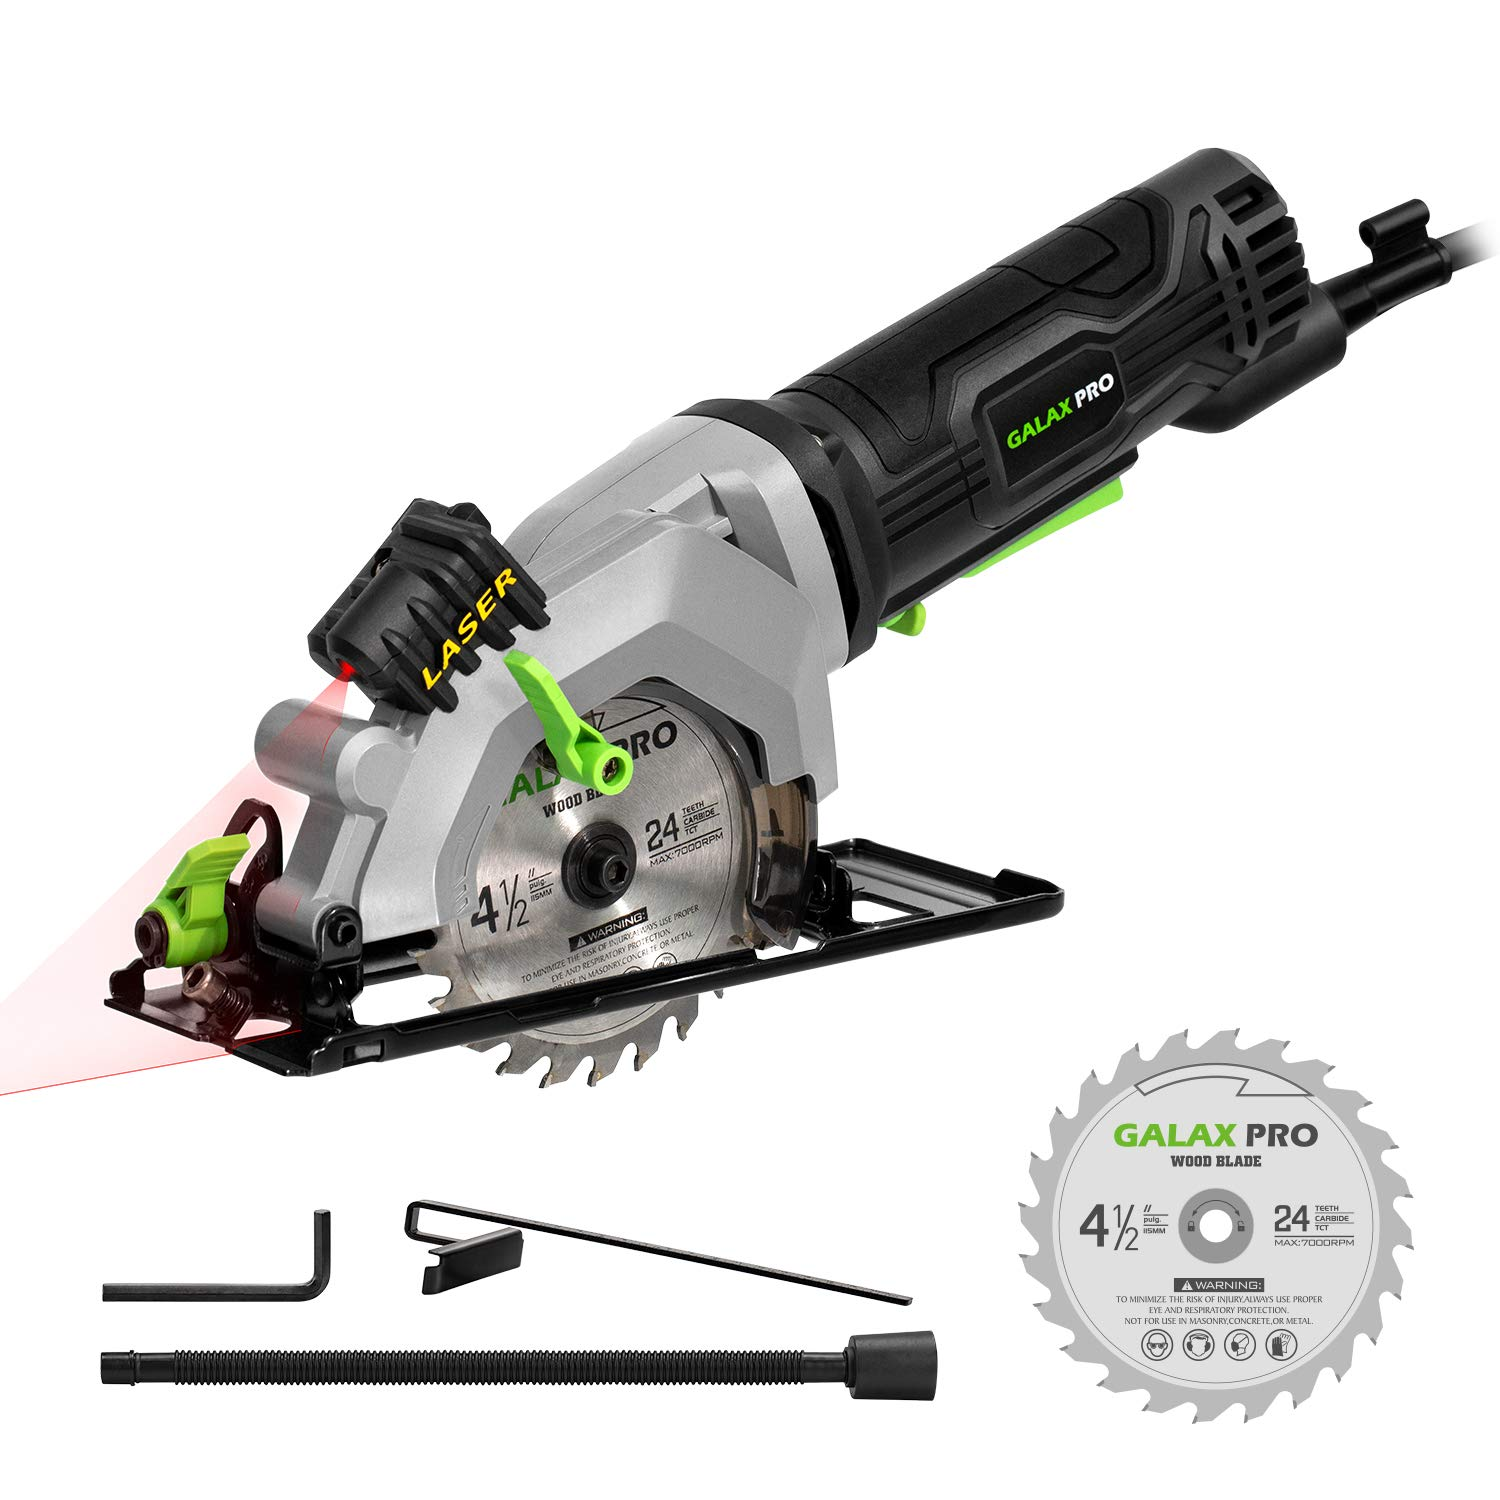 Circular Saw, GALAX PRO 4Amp 3500RPM Mini Circular Saw with Laser Guide, Max. Cutting Depth1-11/16''(90°), 1-1/8''(45°)Compact Saw with 4-1/2'' 24T TCT Blade, Vacuum Adapter, Blade Wrench, and Rip Guide